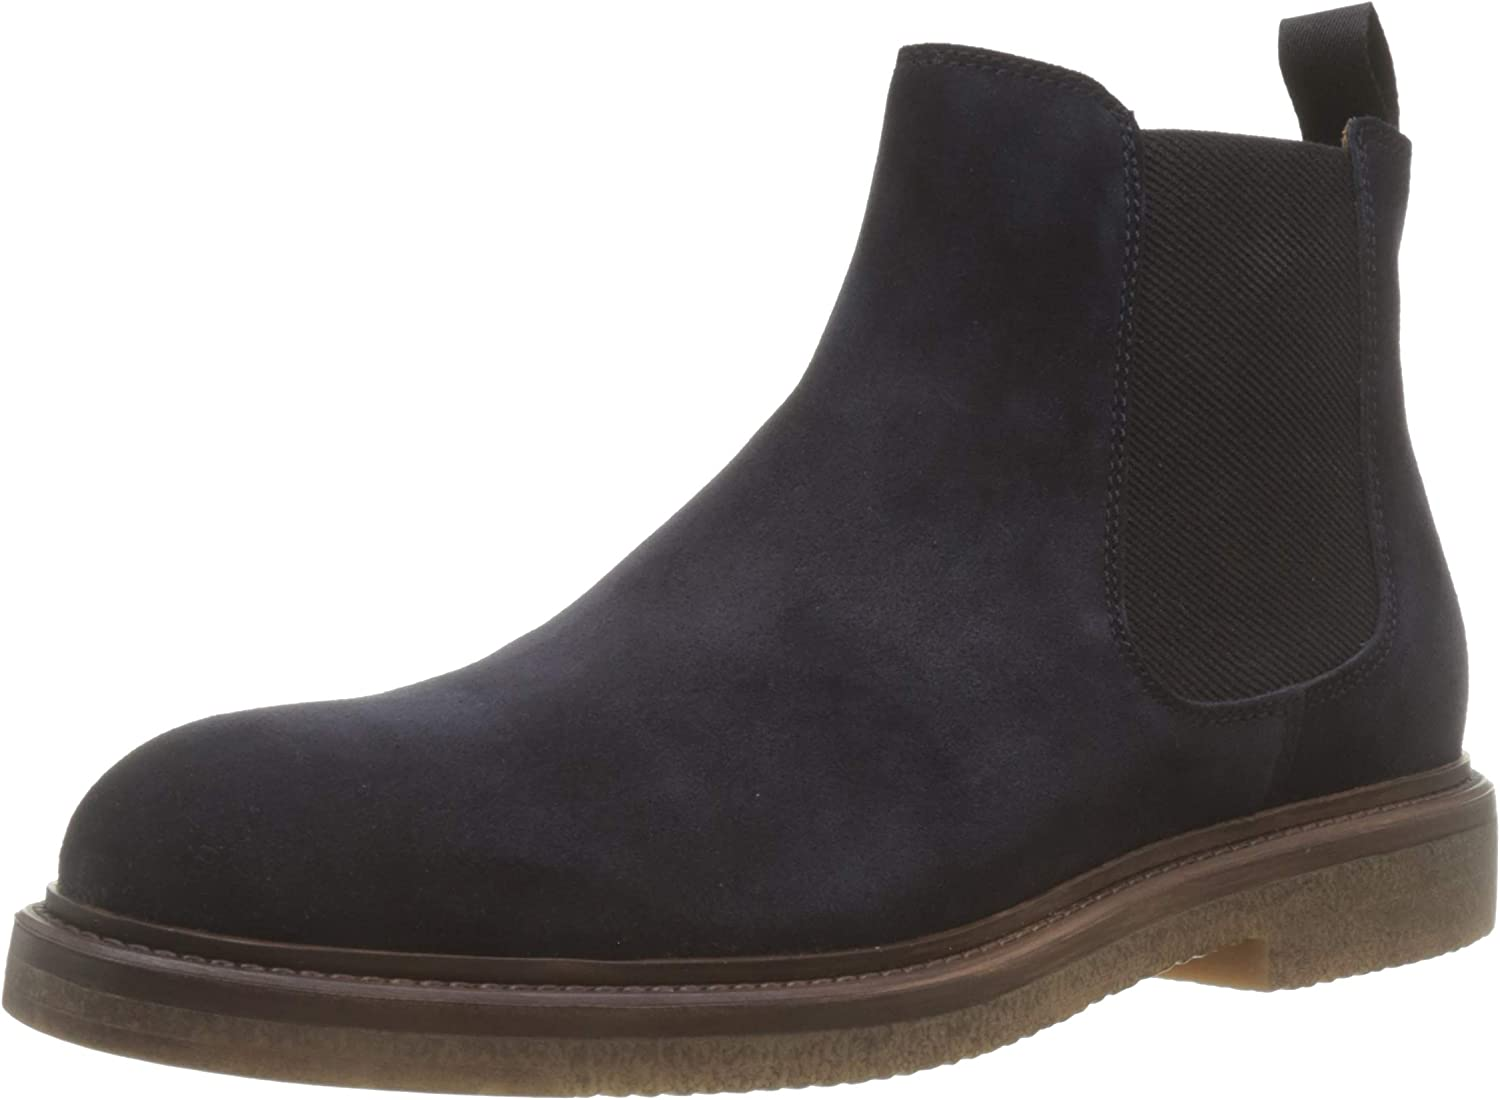 Frau Topics on TV Men's Ankle Classic Boots 2021new shipping free shipping